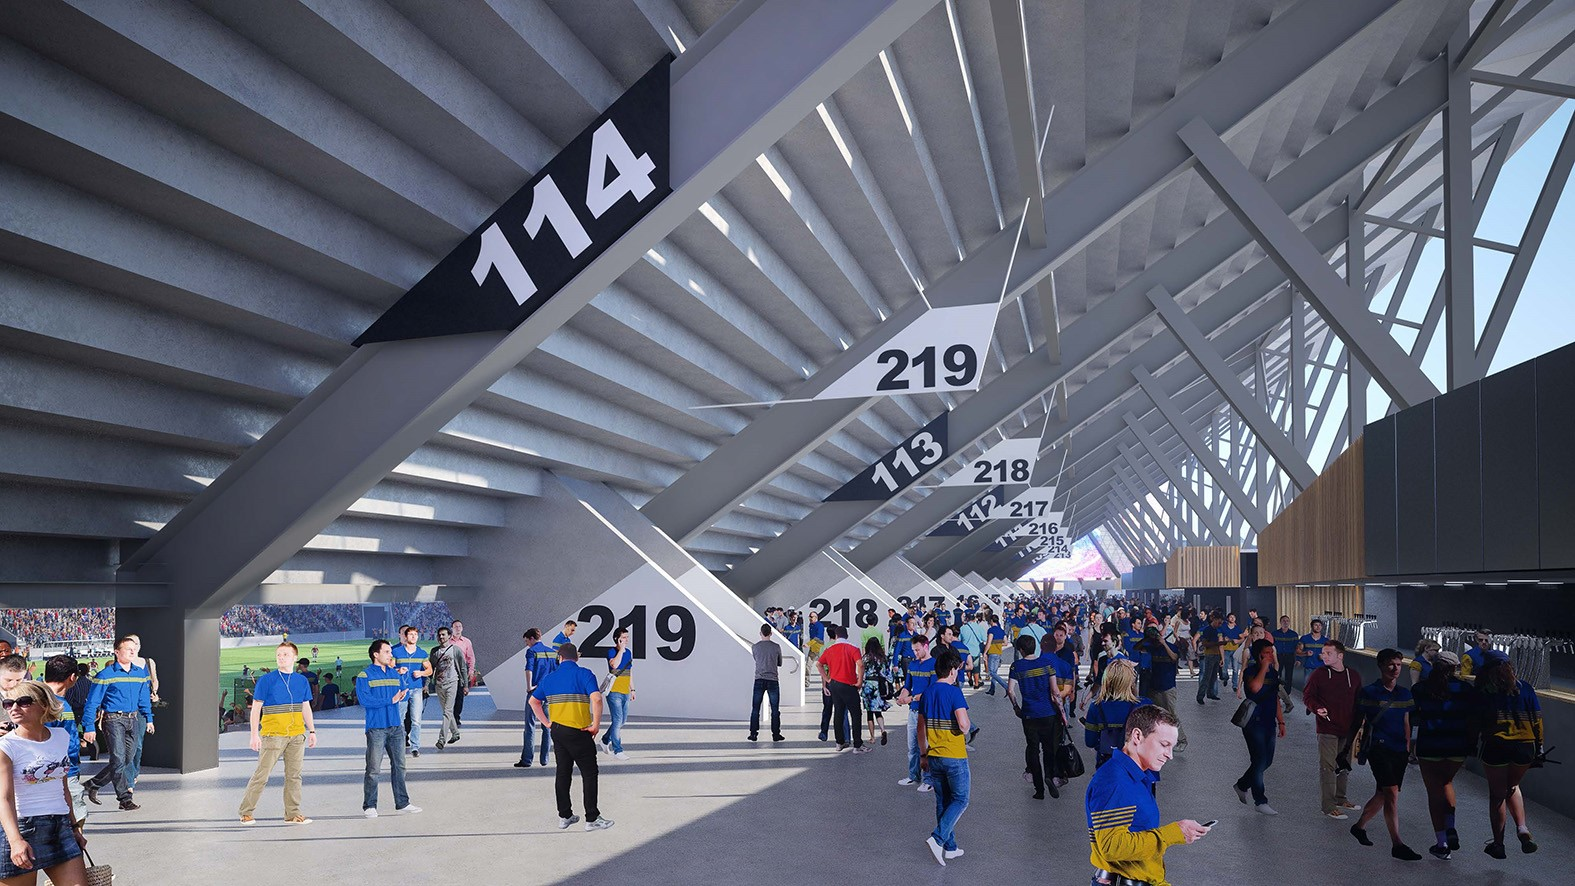 Artist Impression of concourse